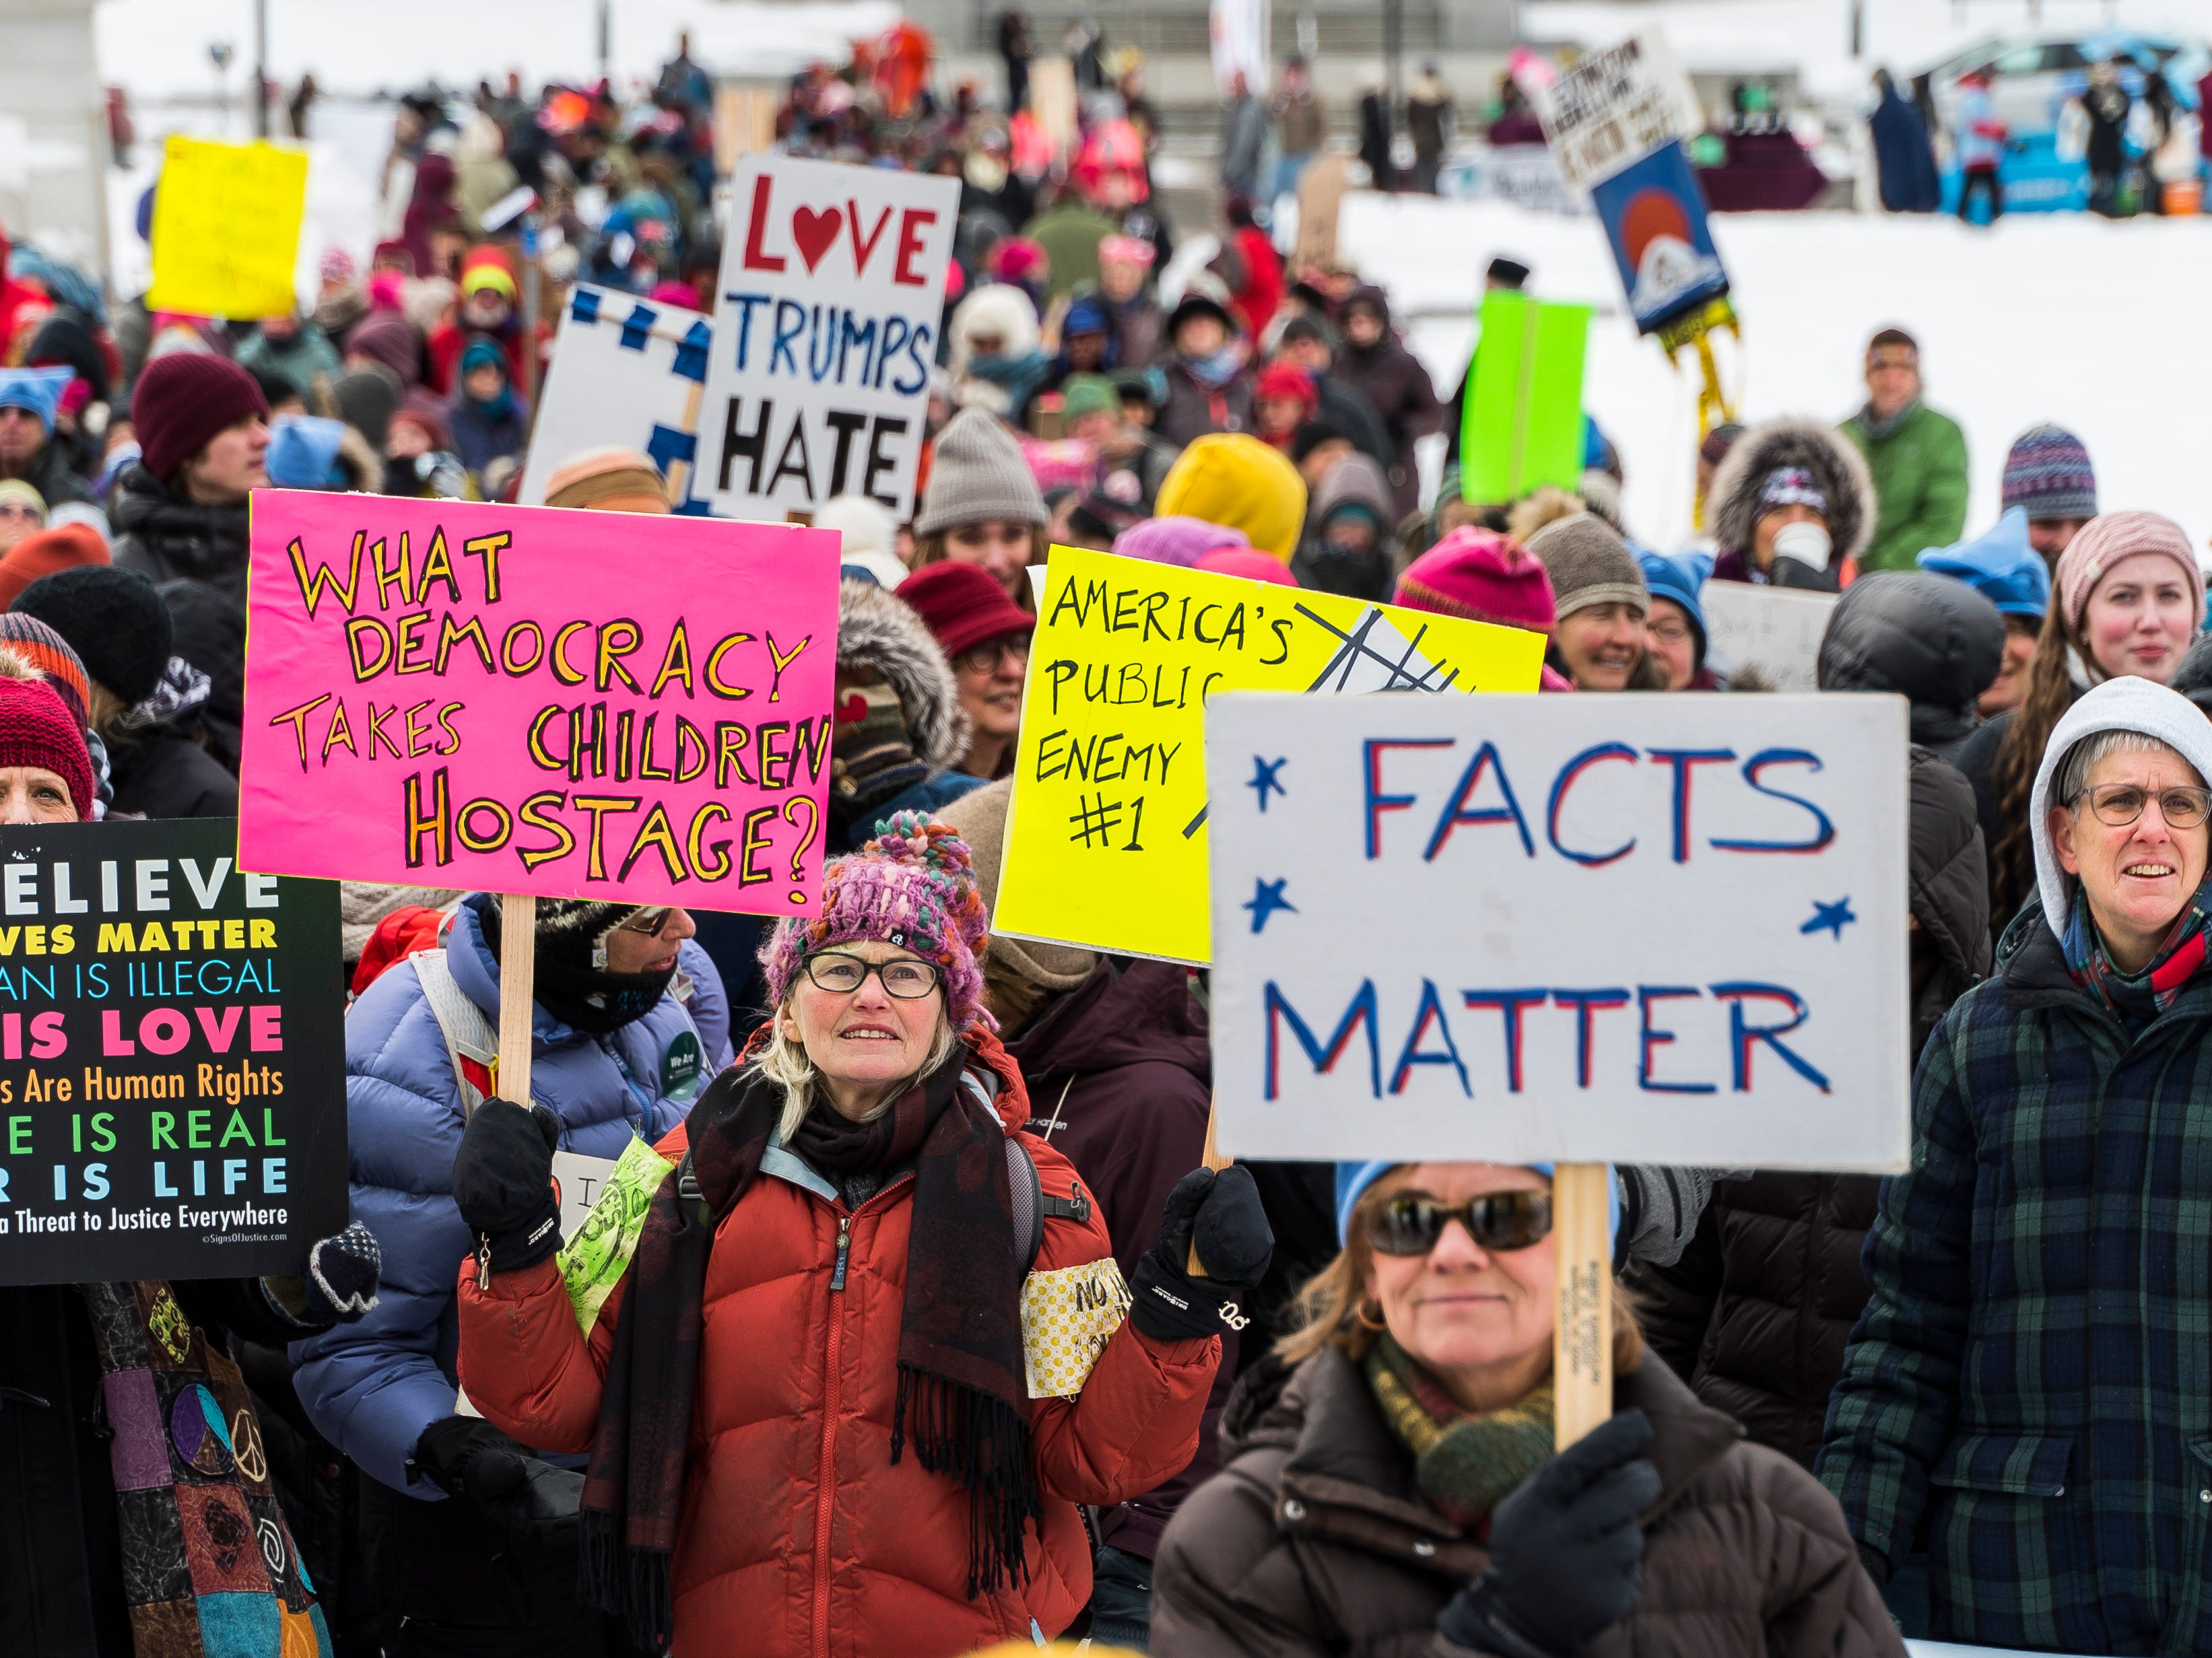 According to police, about 700 to 1000 people attended the Women's March Vermont rally in Montpelier on Saturday, Jan. 19, 2019.